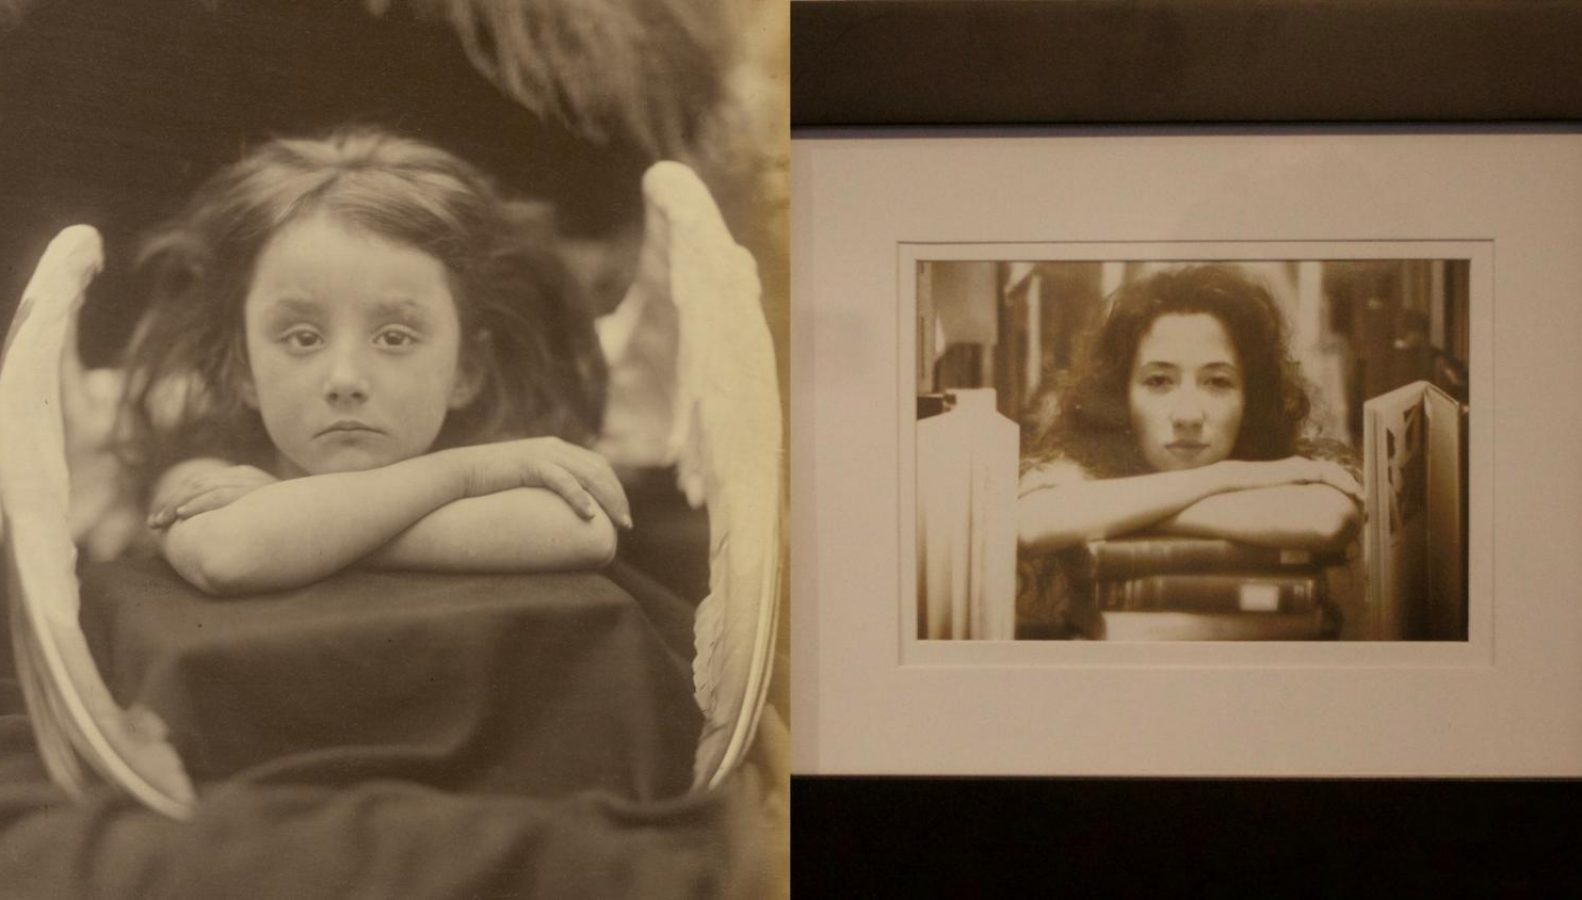 """Left, the original """"I Wait"""" photograph by Julia Margaret Cameron. Right, Marley Roush sits in the library with her arms crossed over a stack of books in her self portrait, """"I Wait for Finals."""" The work portrays Roush's identity as a college student during finals week. (Left: Courtesy by The J. Paul Getty Museum / Wikimedia Commons // Right: Dayla Cook — The State Hornet)"""